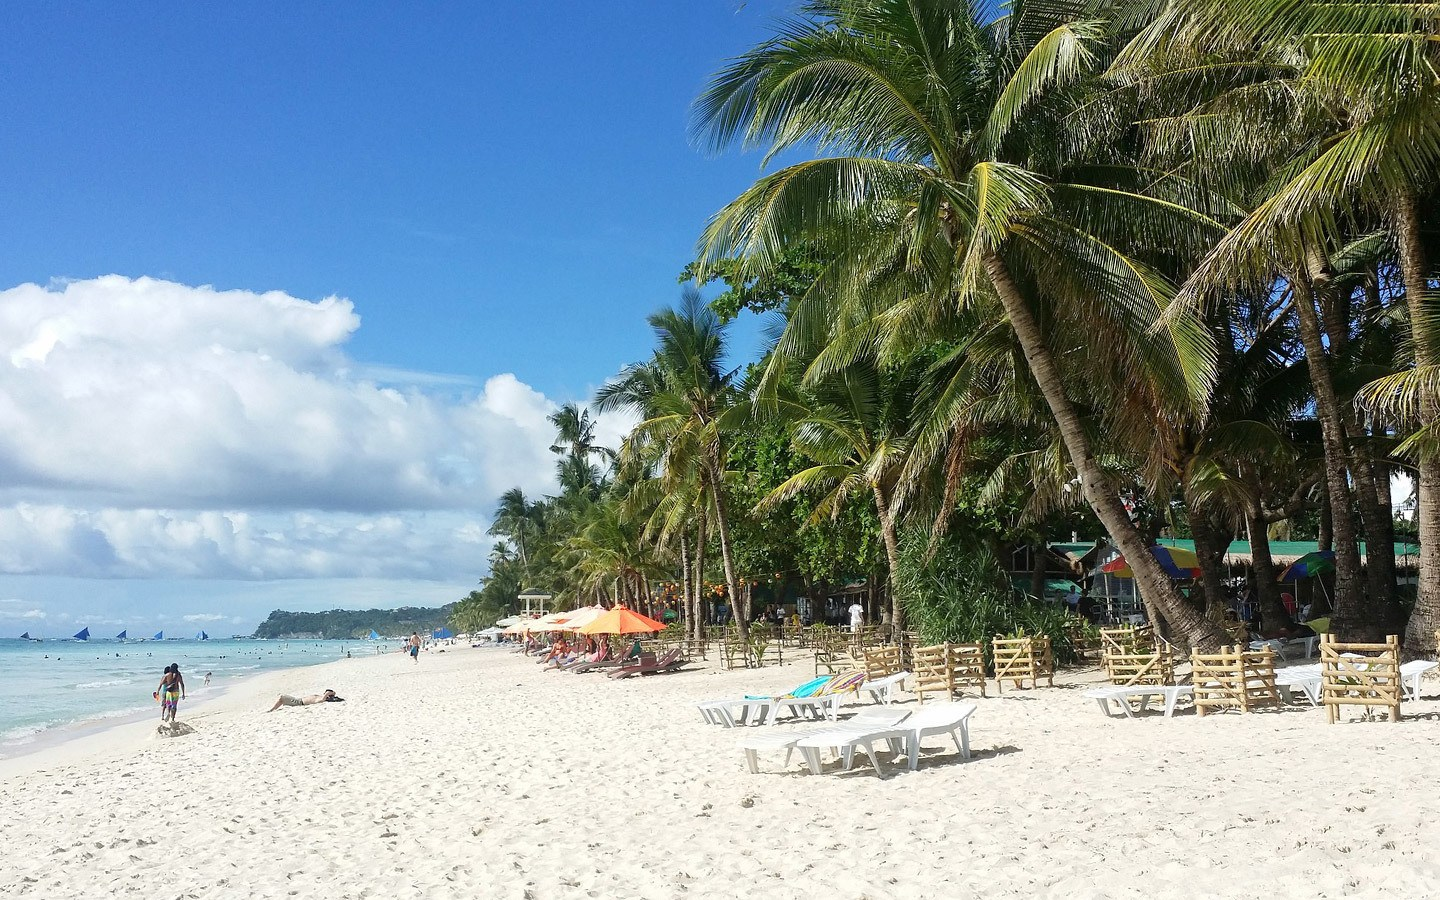 Beach in Borocay in the Phillipines before sustainable tourism measures to reduce pollution